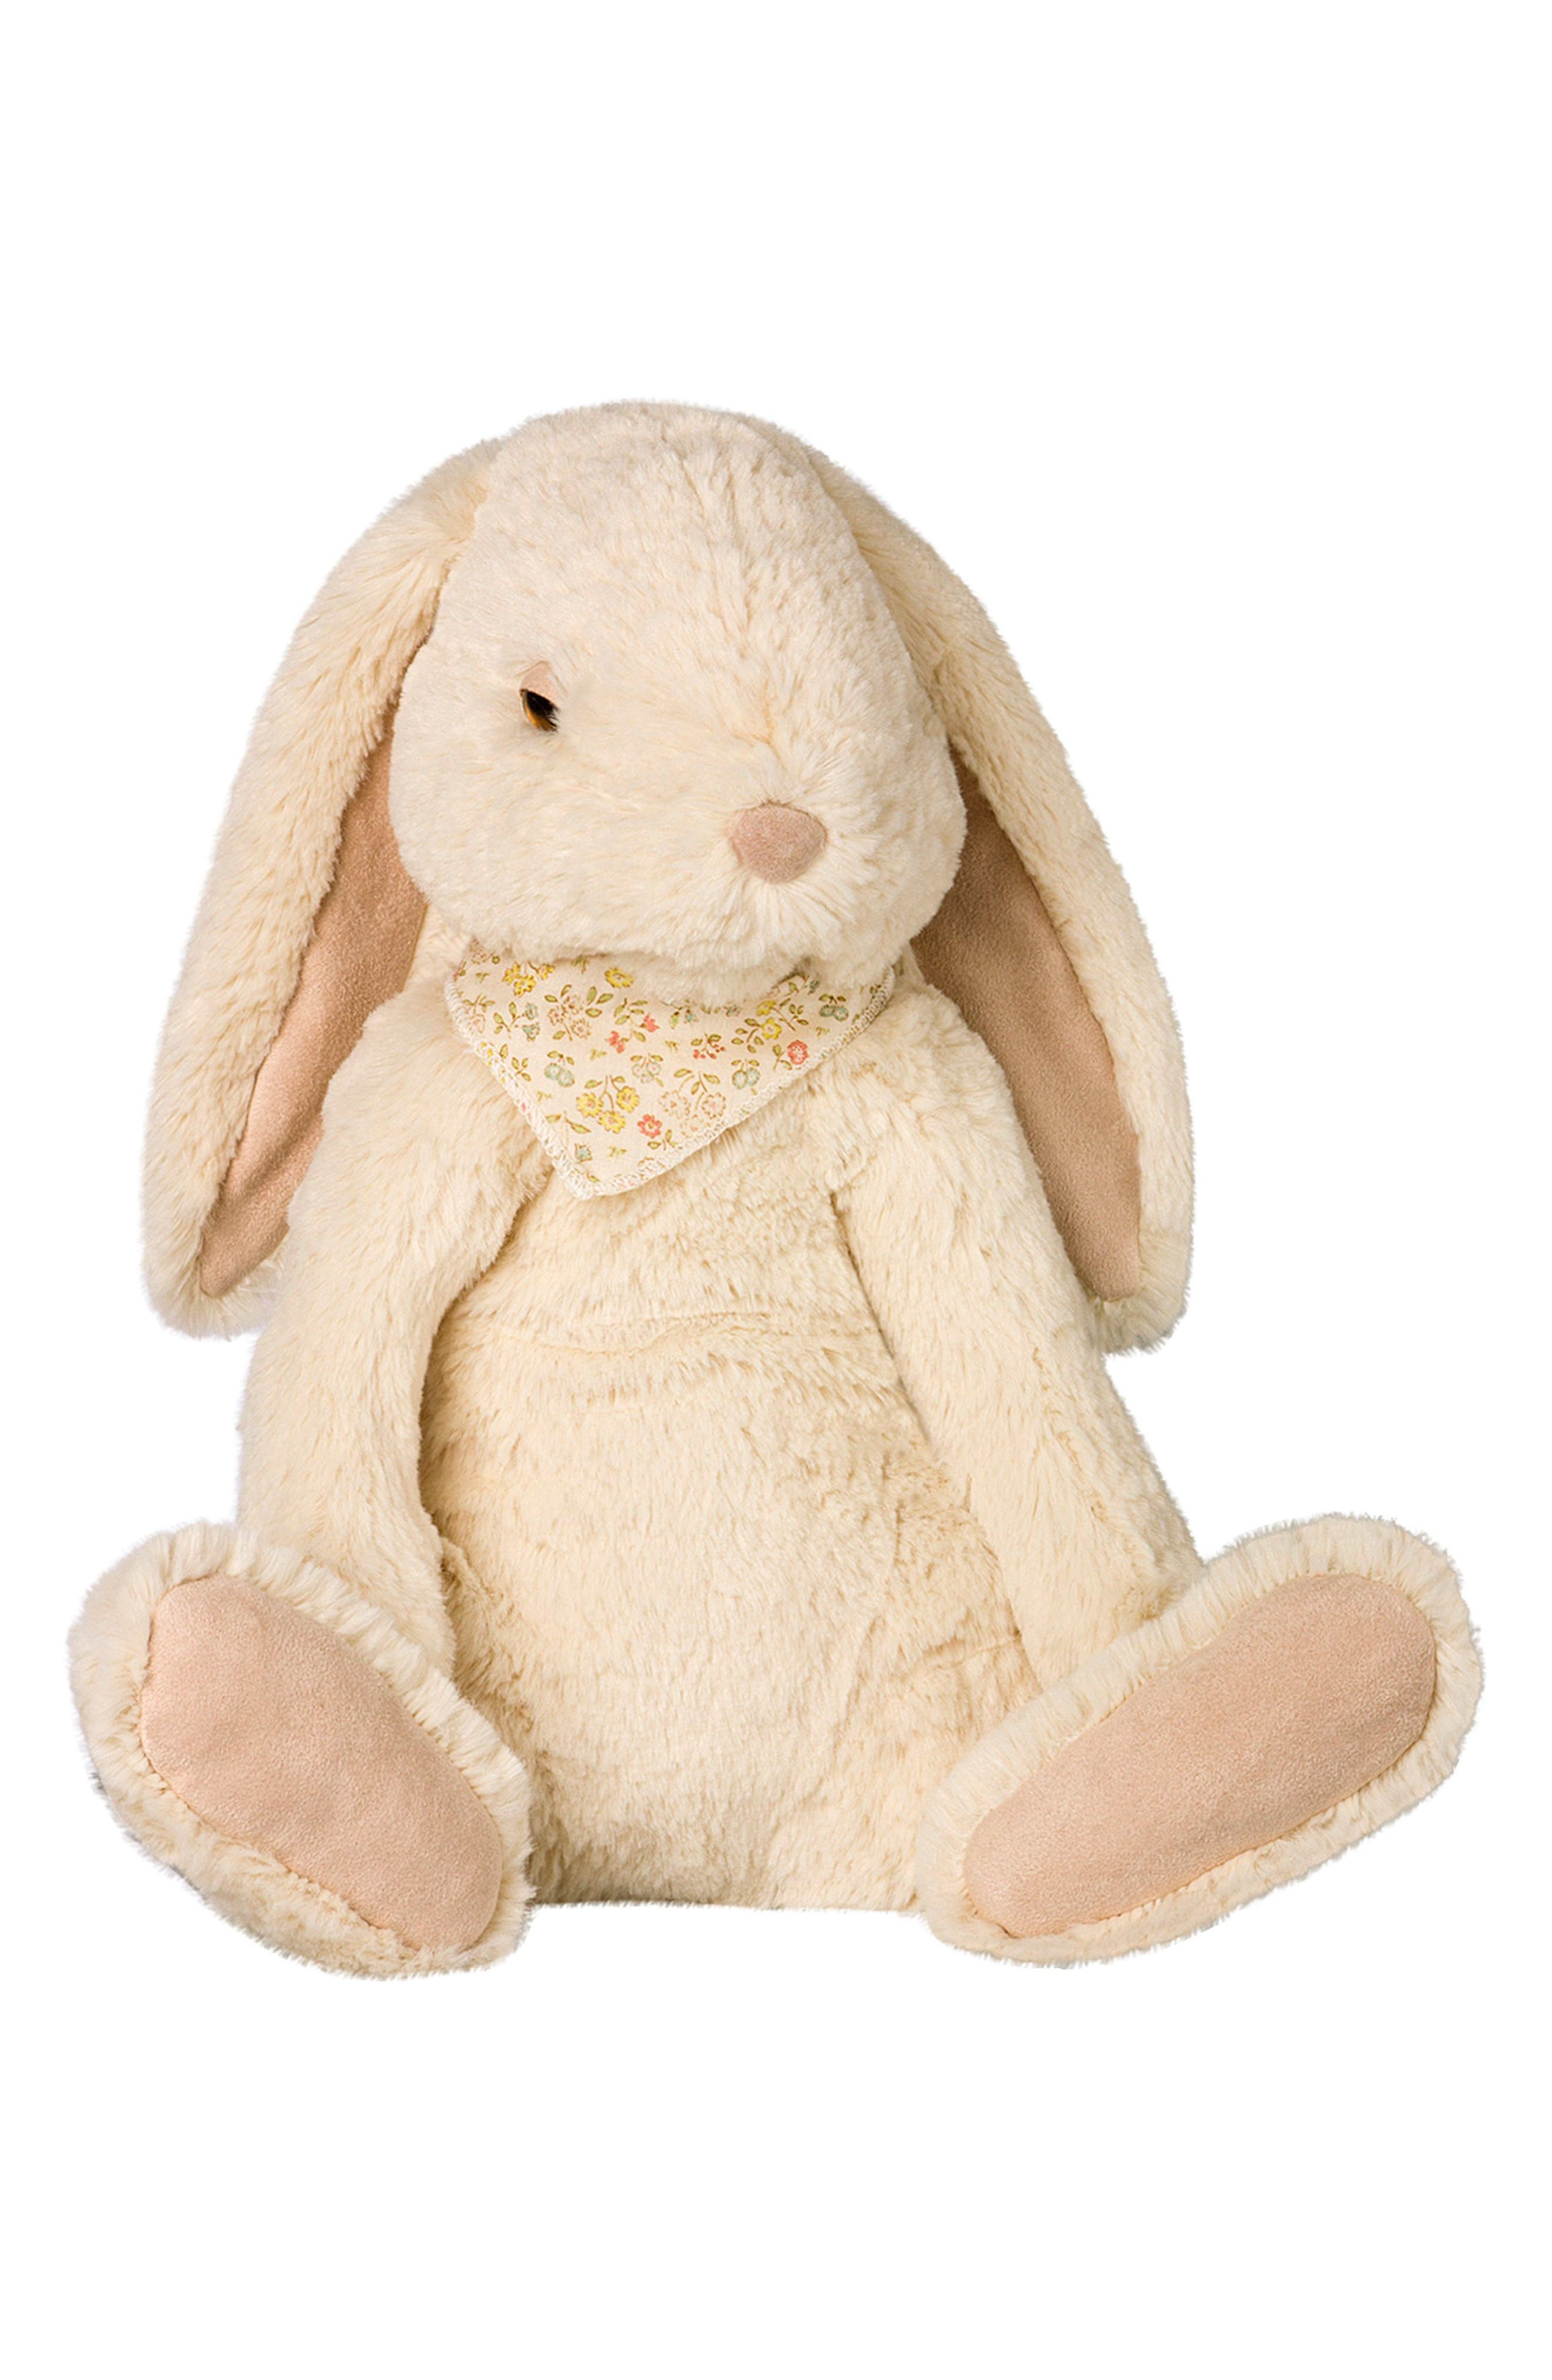 Fluffy Buffy Stuffed Animal,                             Main thumbnail 1, color,                             Off White